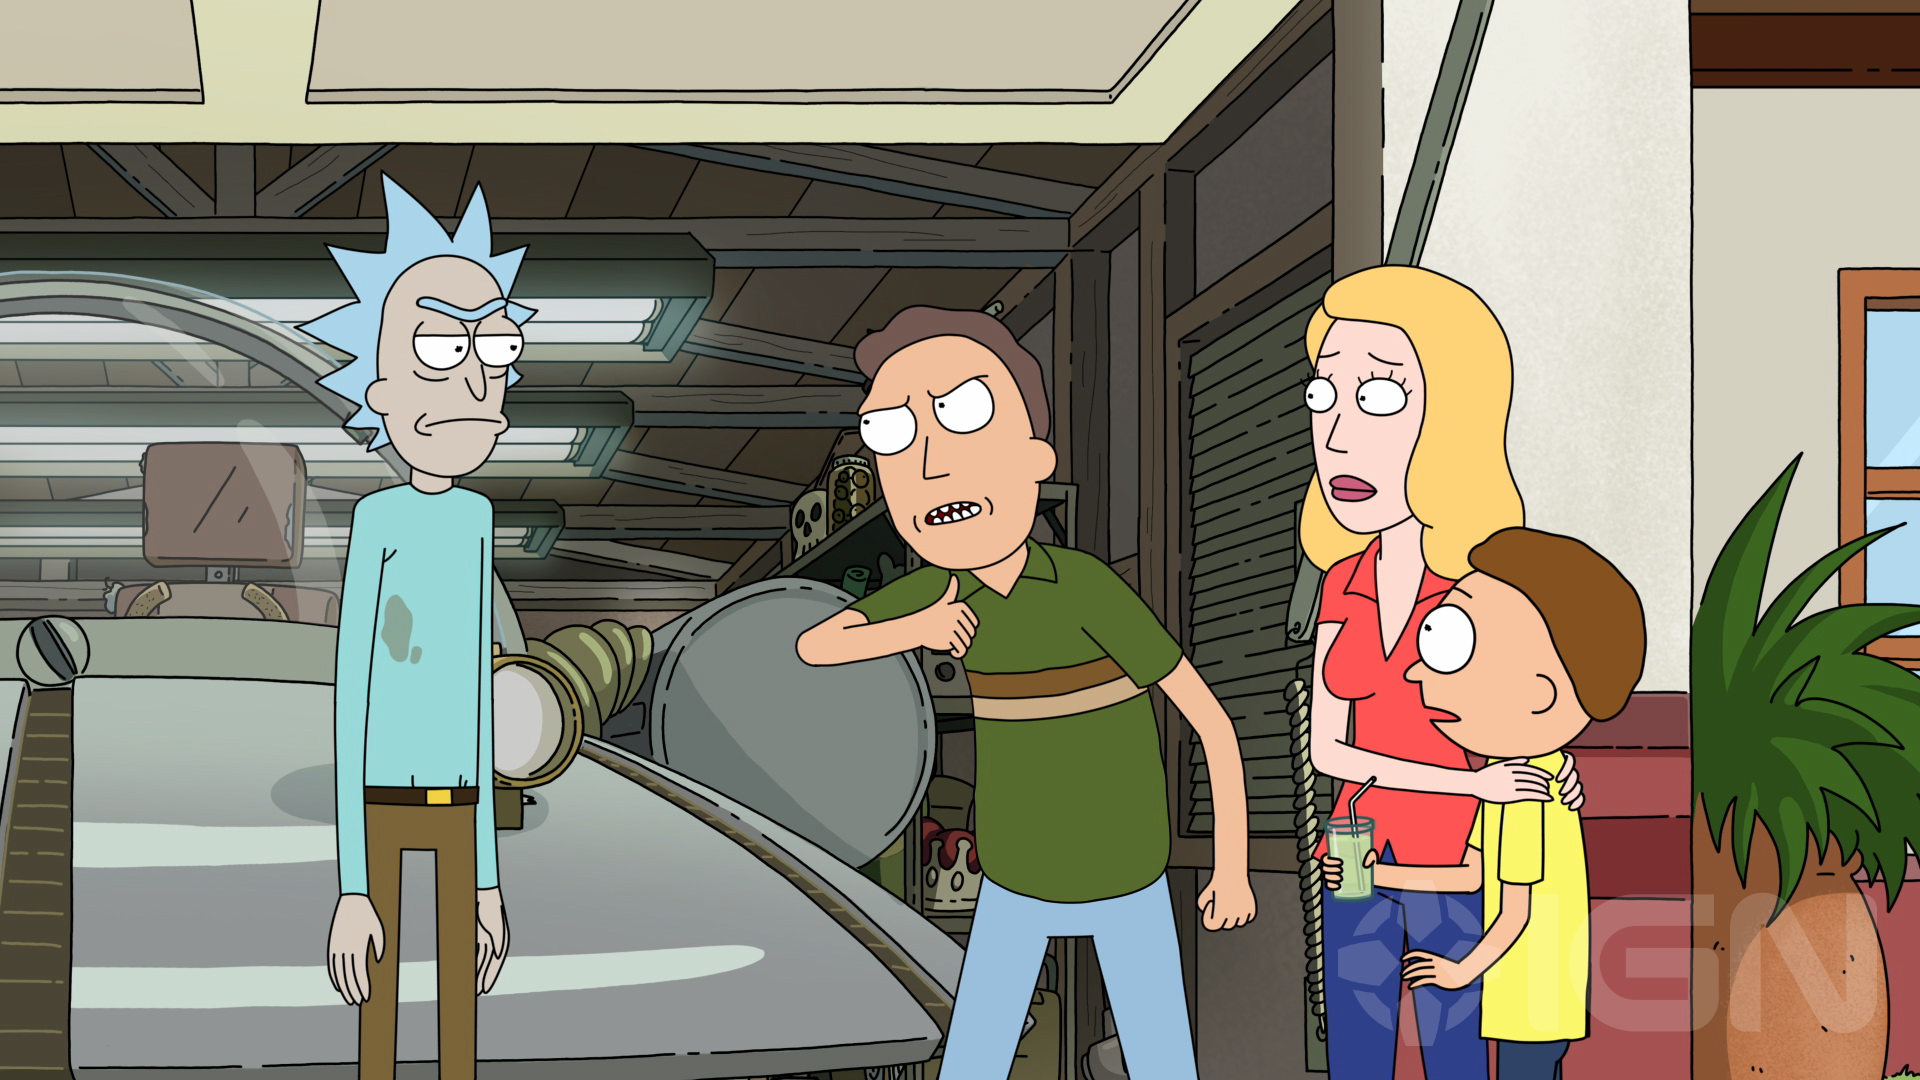 Rick And Morty Exclusive New Image Shows Rick And Jerry At War If You Re A Rick And Morty Fan You Can T Help But Lo Rick And Morty Season Rick And Morty